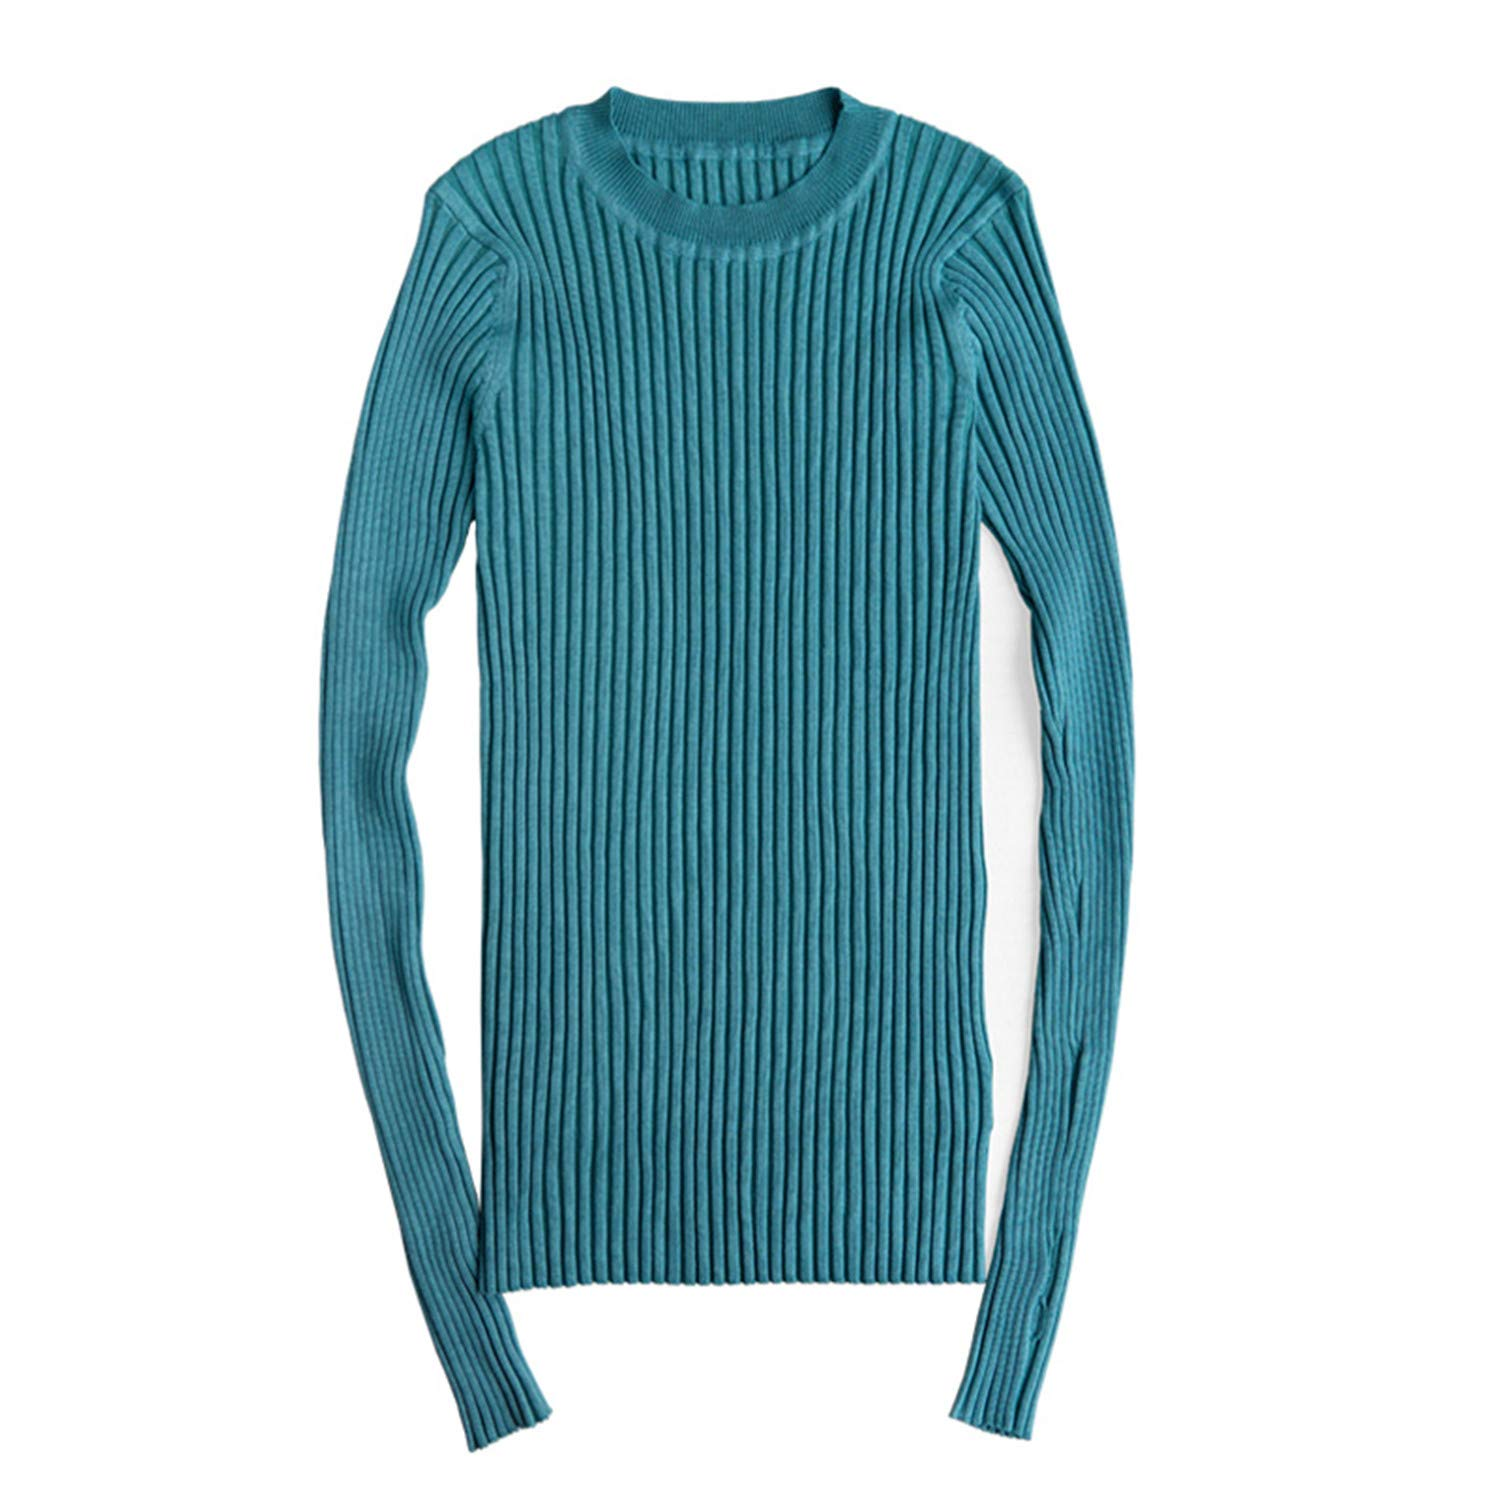 c2760e33669983 Women Sweater Pullover Basic Rib Knitted Cotton Tops Crew Neck Essential  Jumper Long Sleeve Sweaters Aqua Blue One Size at Amazon Women s Clothing  store